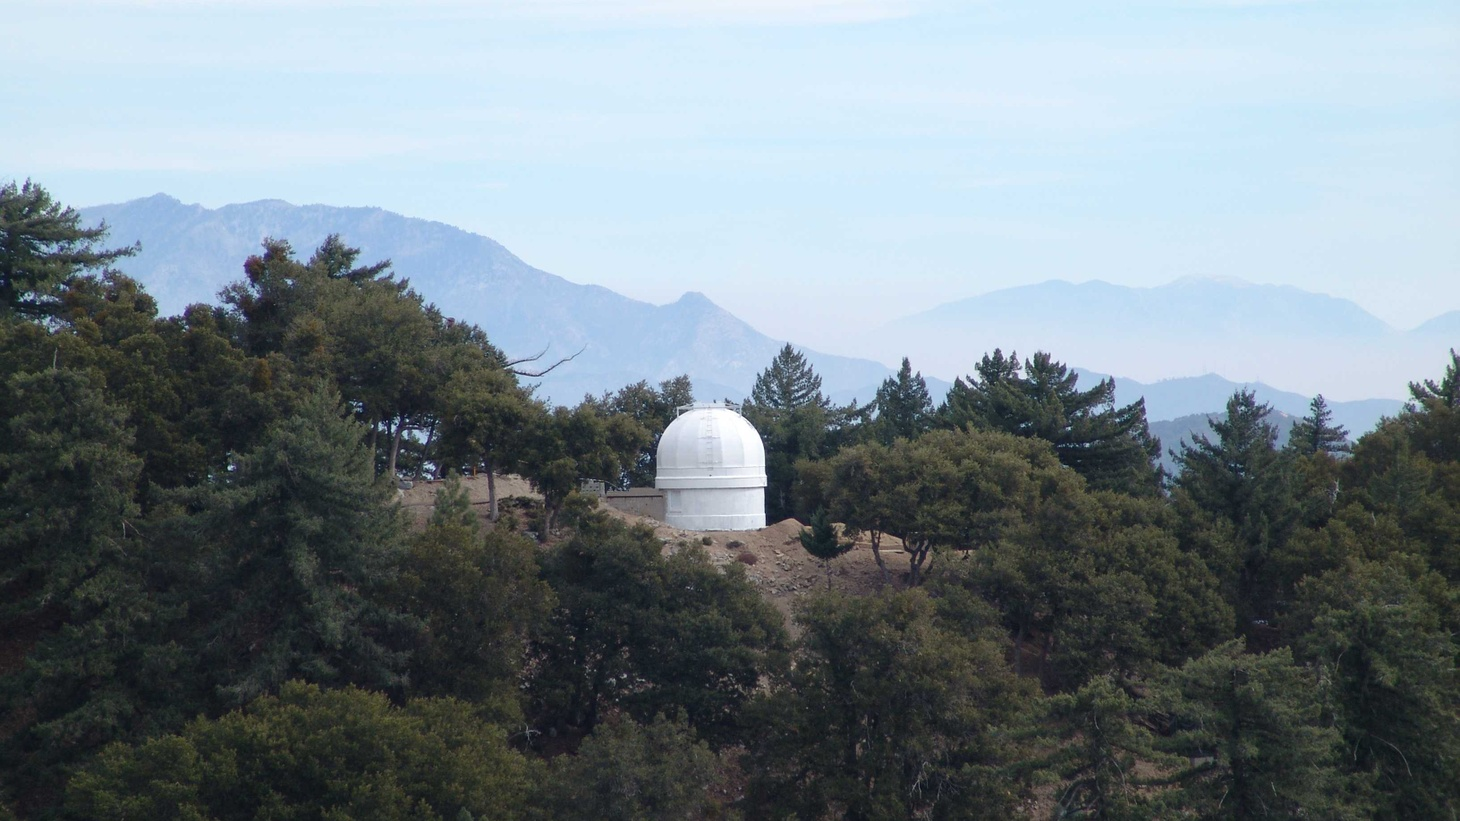 Mt. Wilson in LA County is home to Caltech's seismic station, which has been recording earthquake activity for a century.